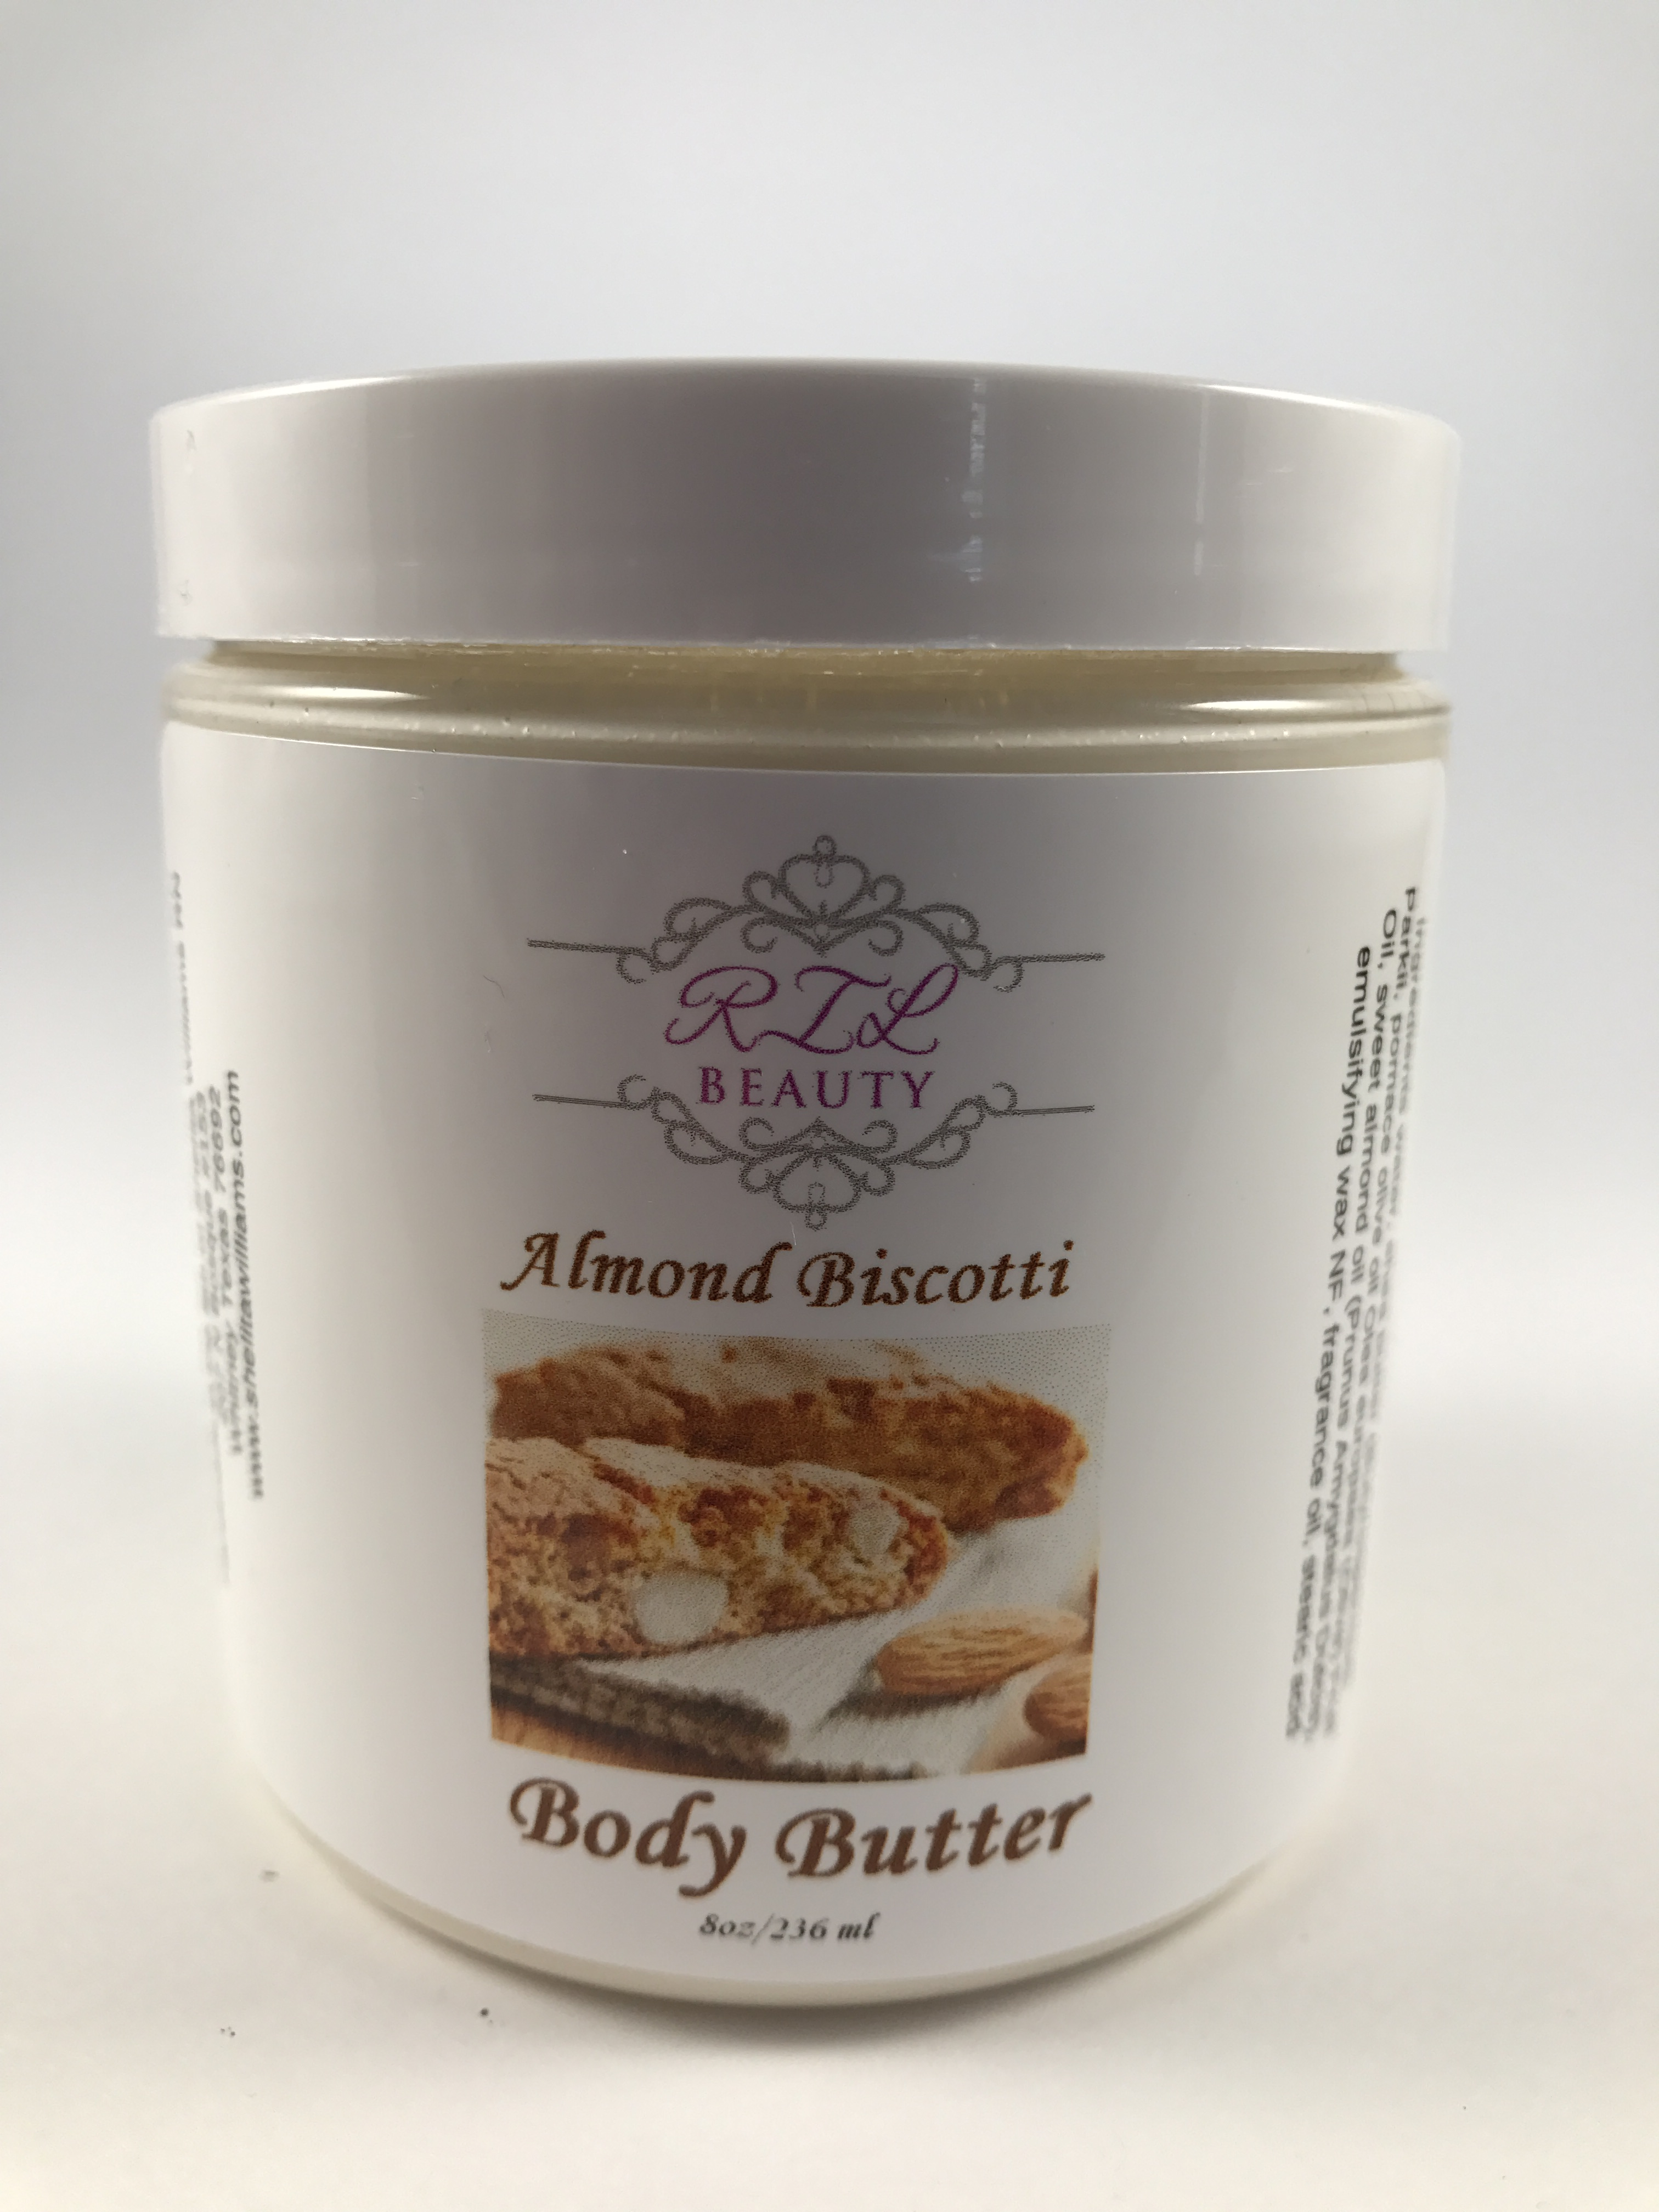 Almond Biscotti 8oz. Body Butter